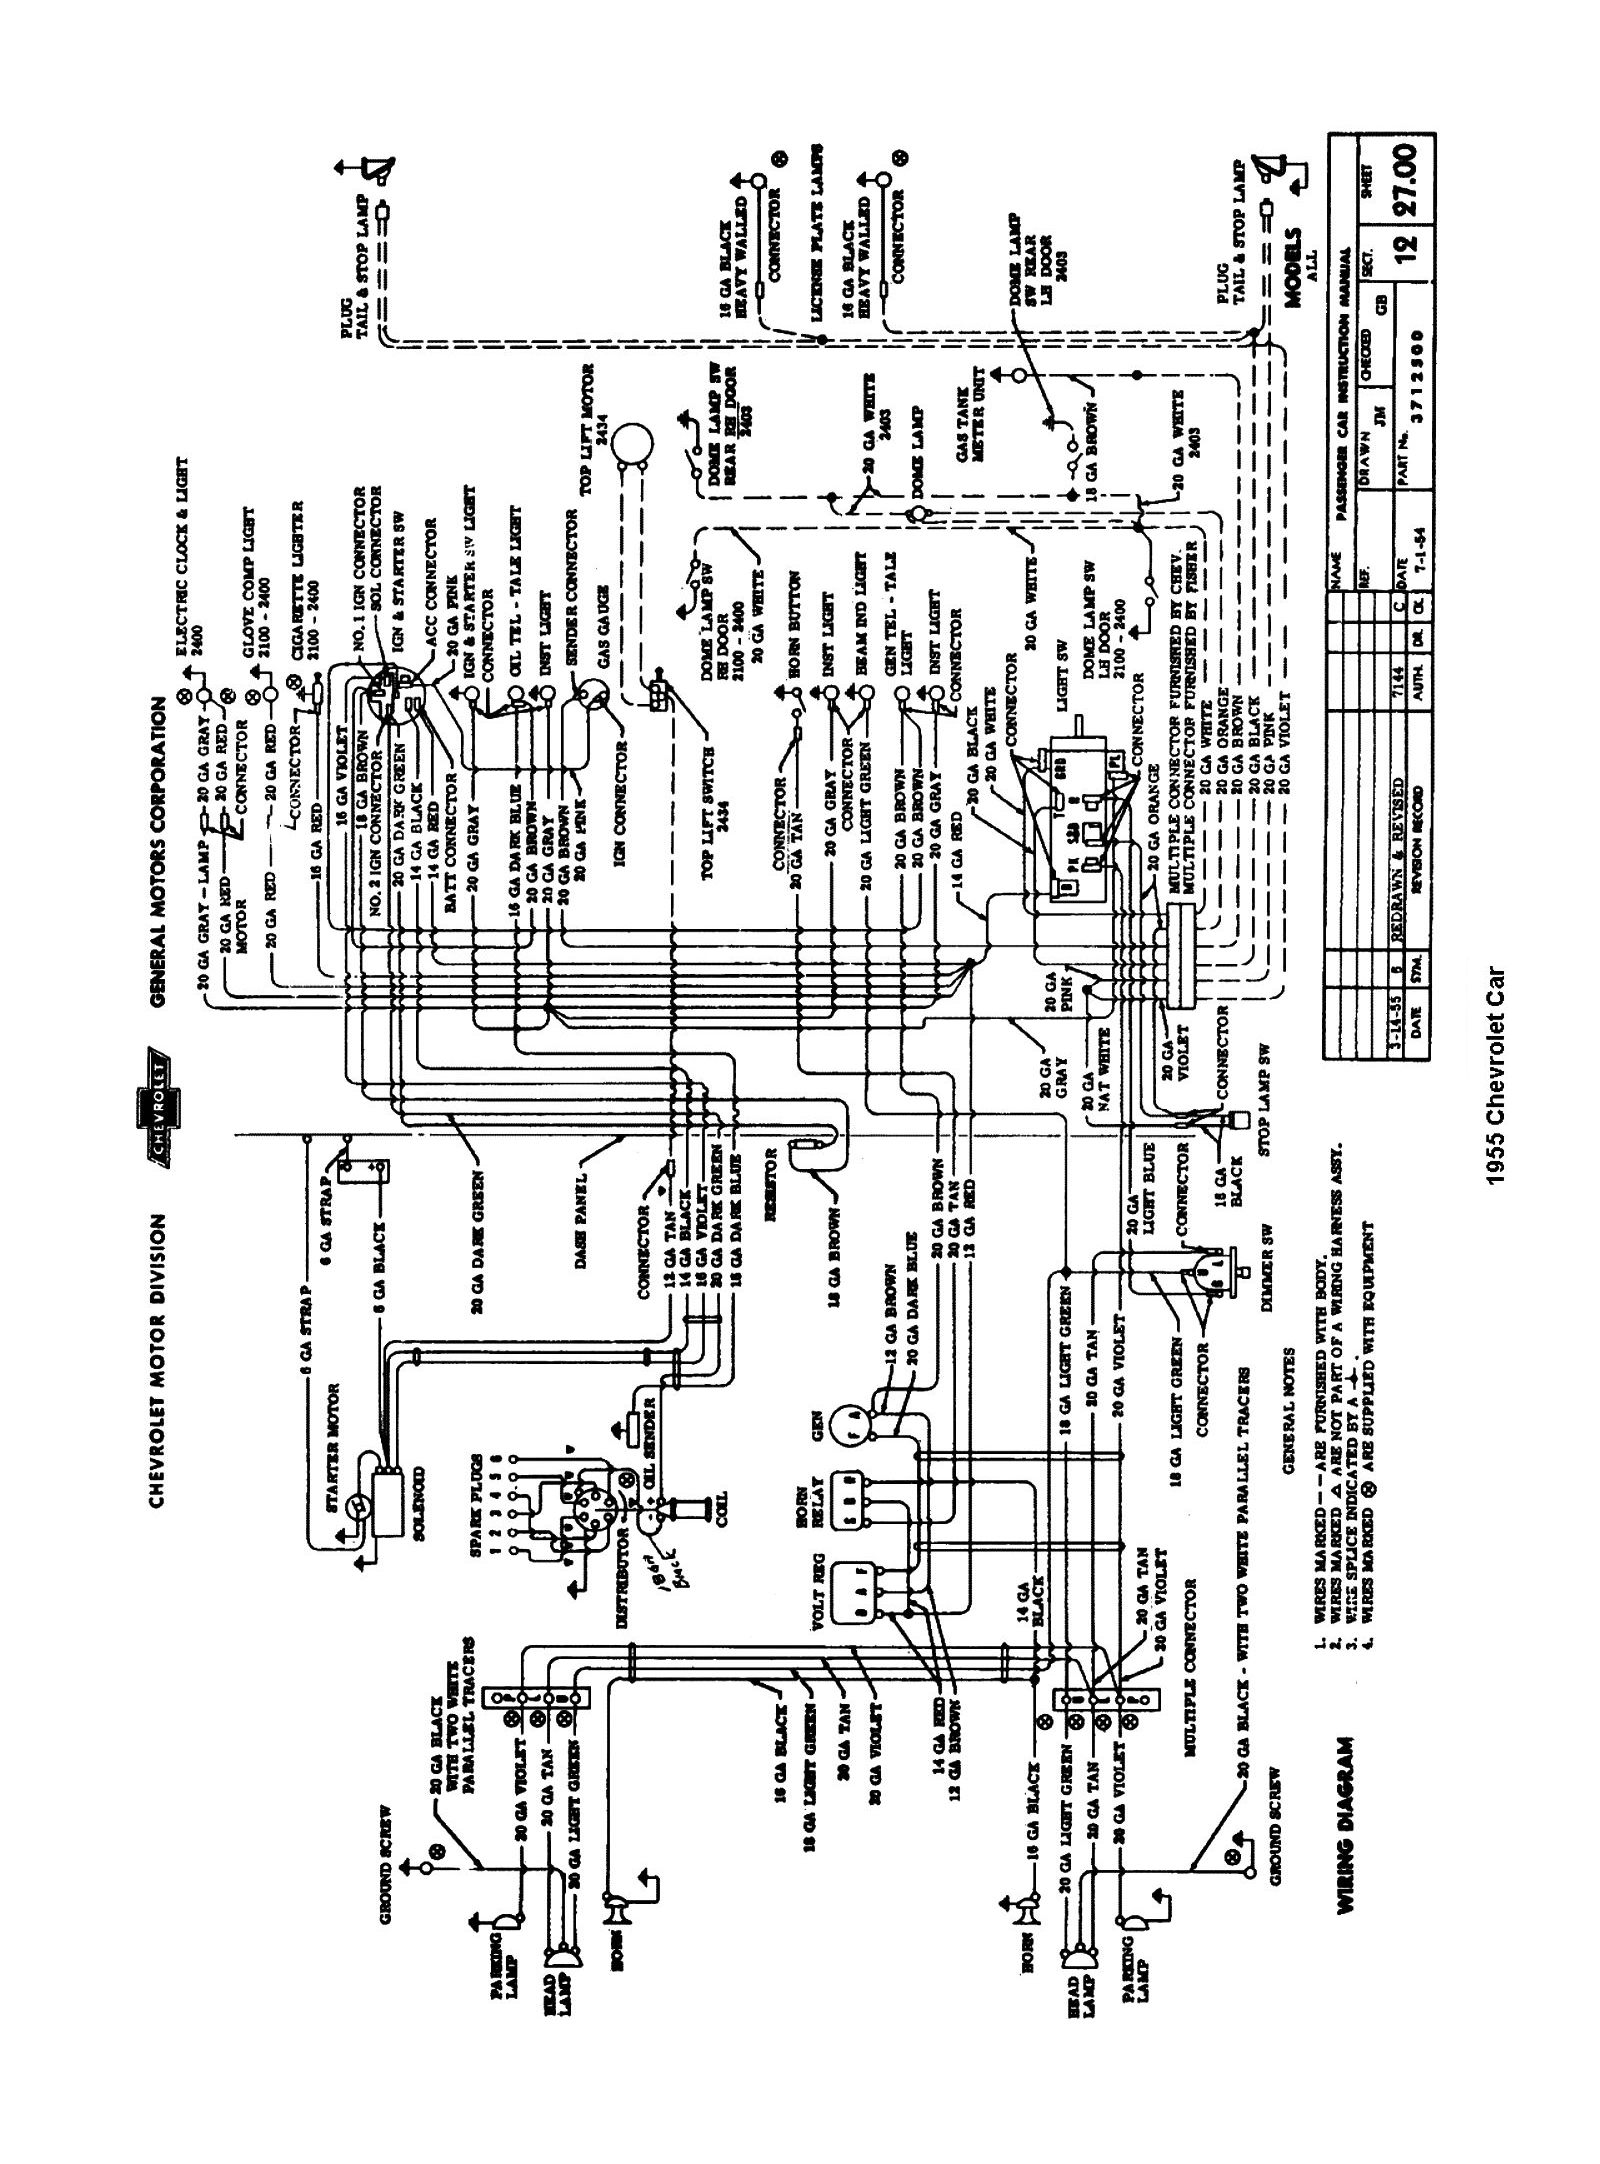 hight resolution of  1955 passenger car wiring